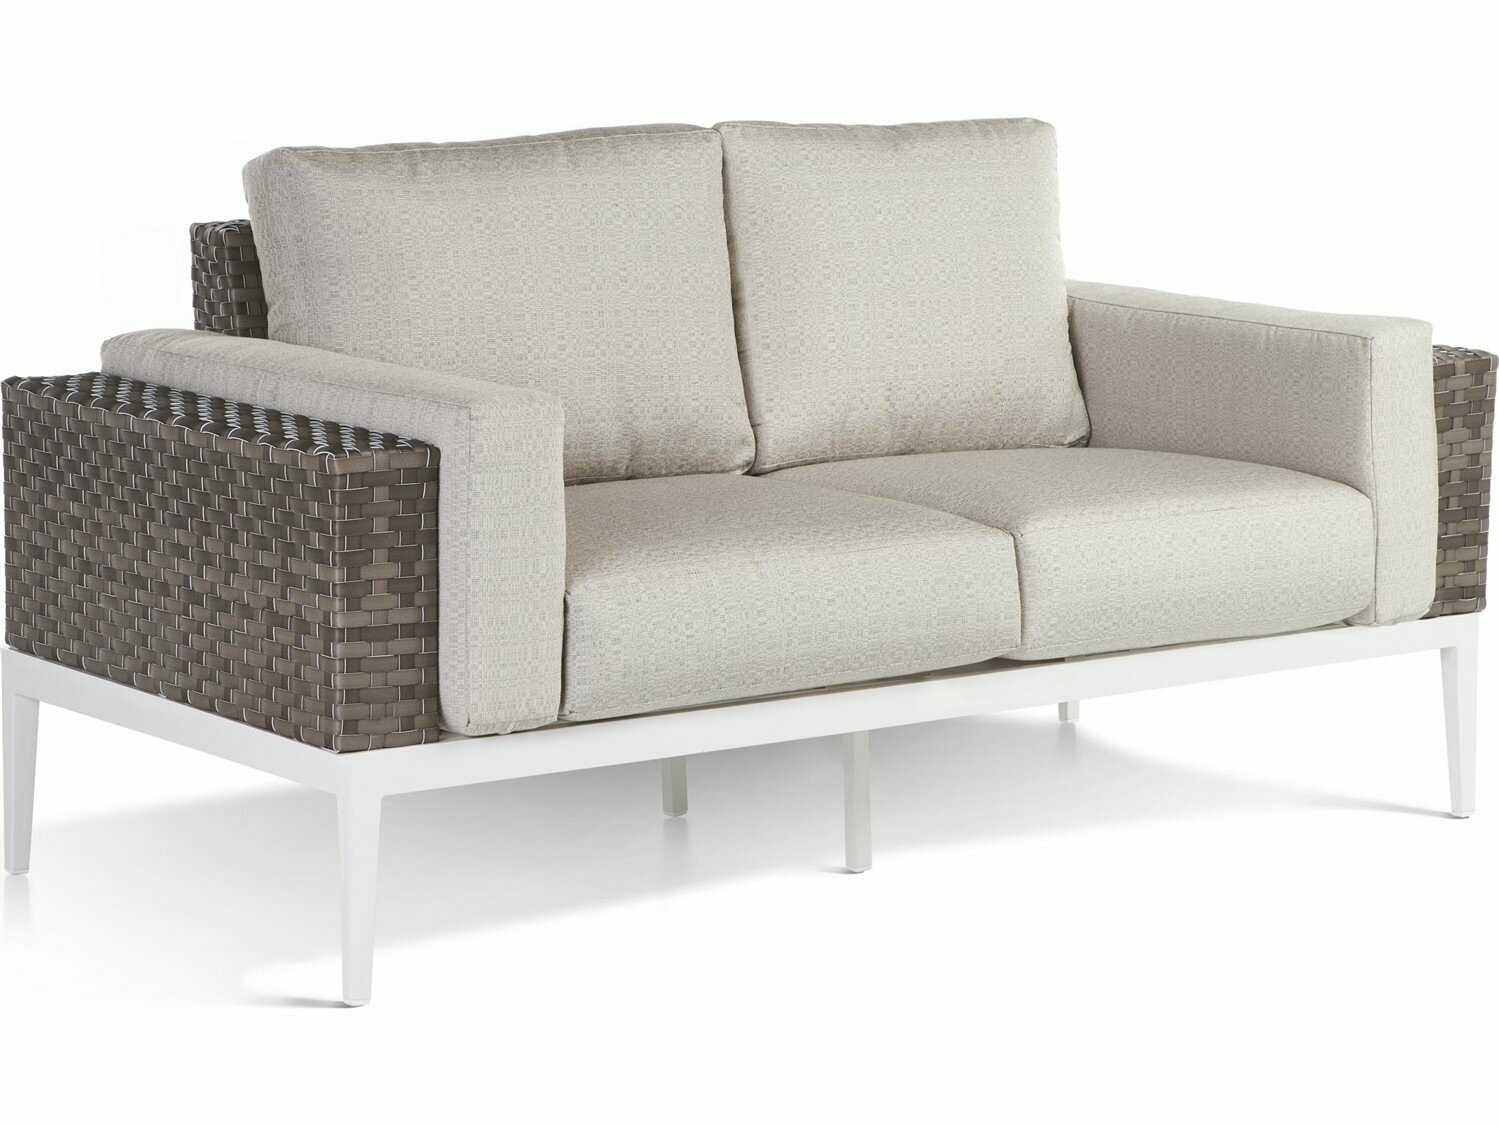 South Sea Rattan Stevie Wicker Loveseat with Bolsters Pillows